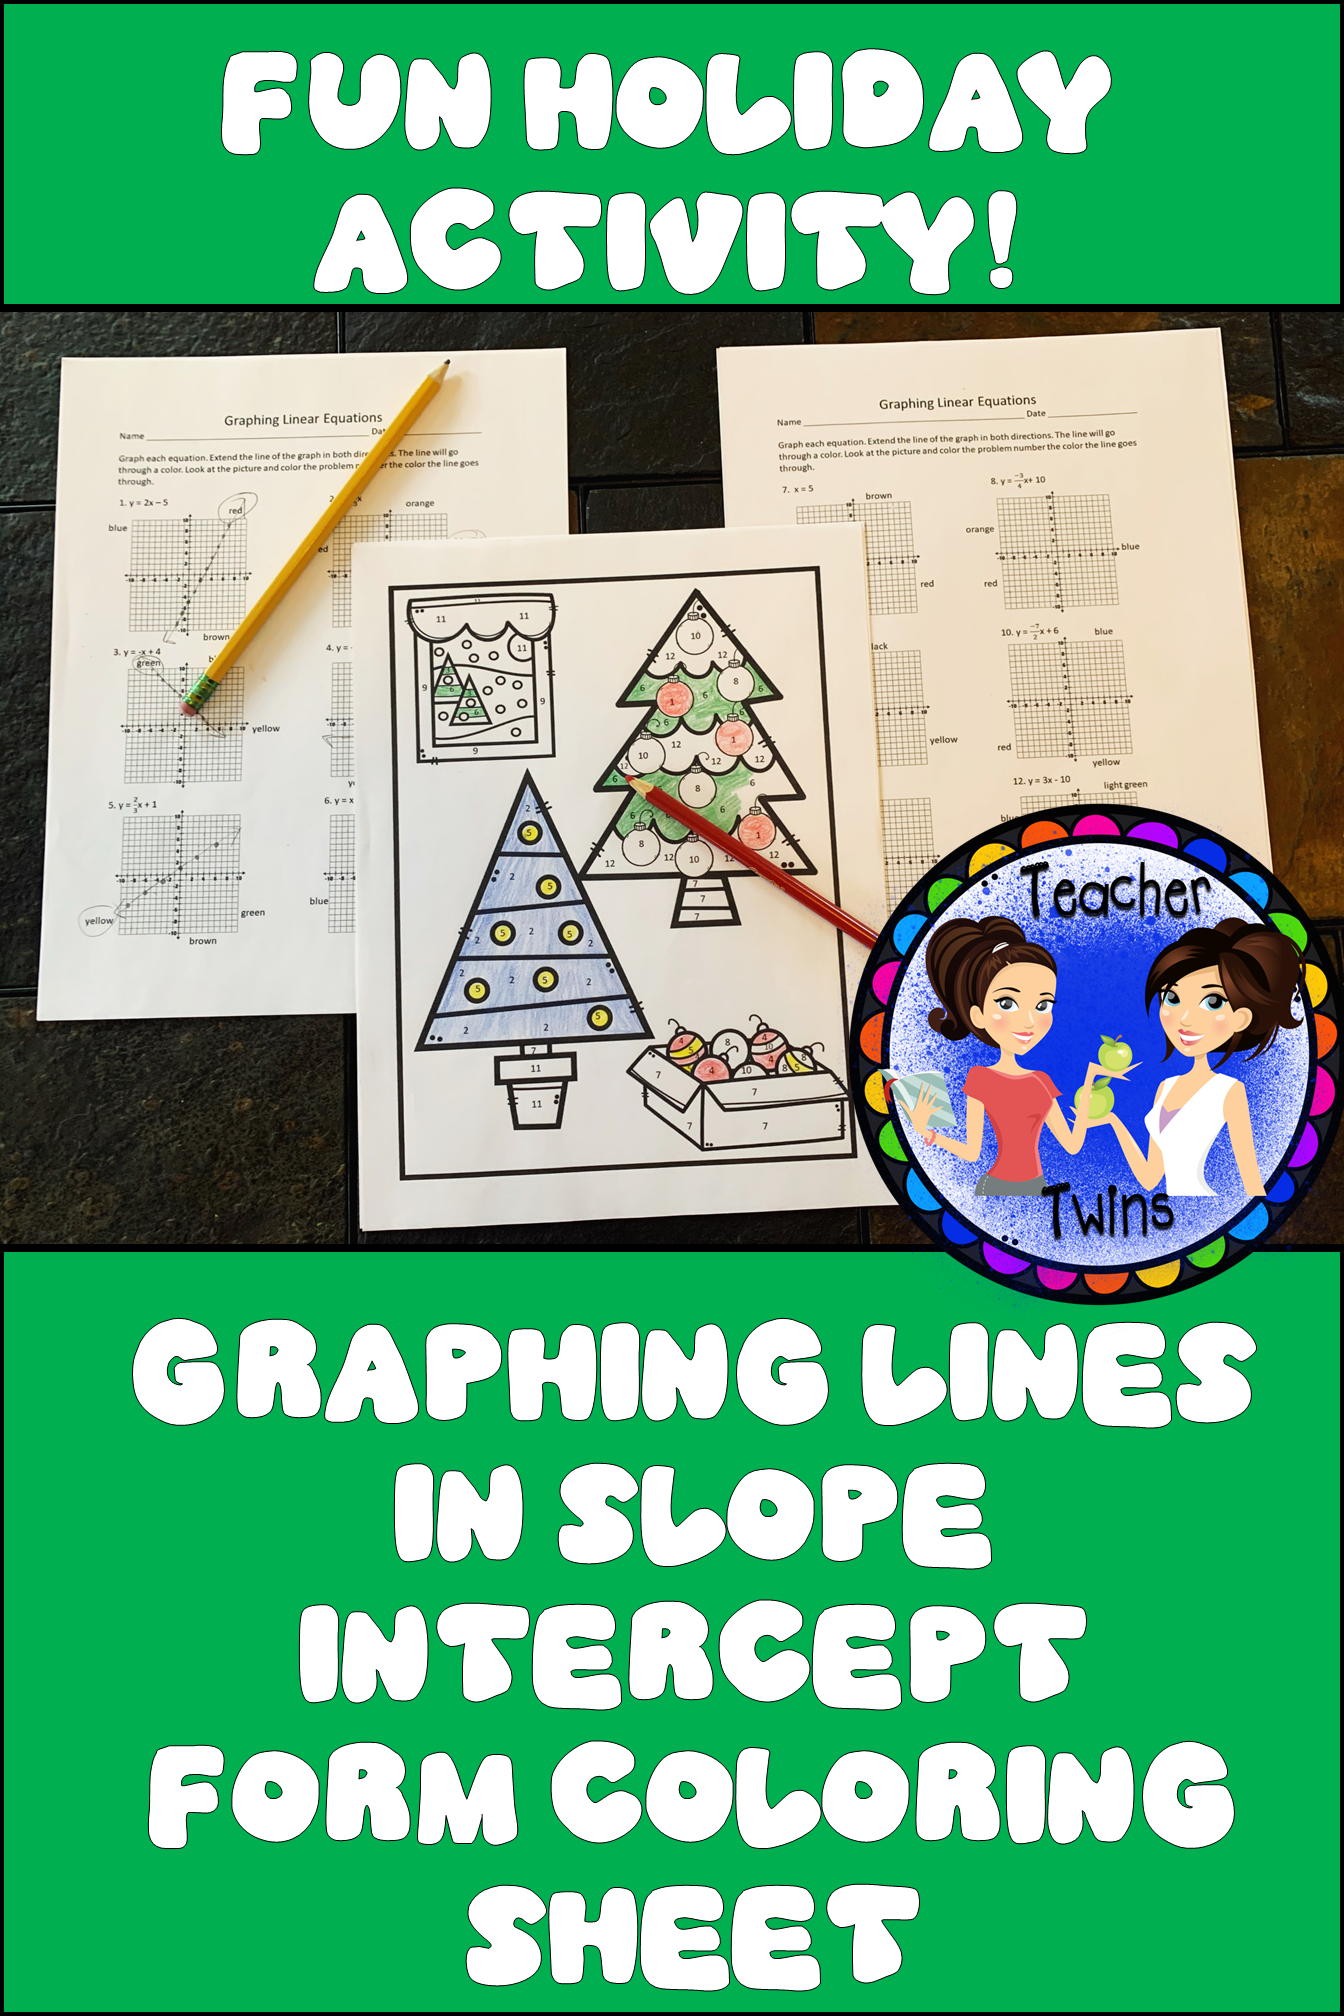 Graphing Lines In Slope Intercept Form Coloring Sheet